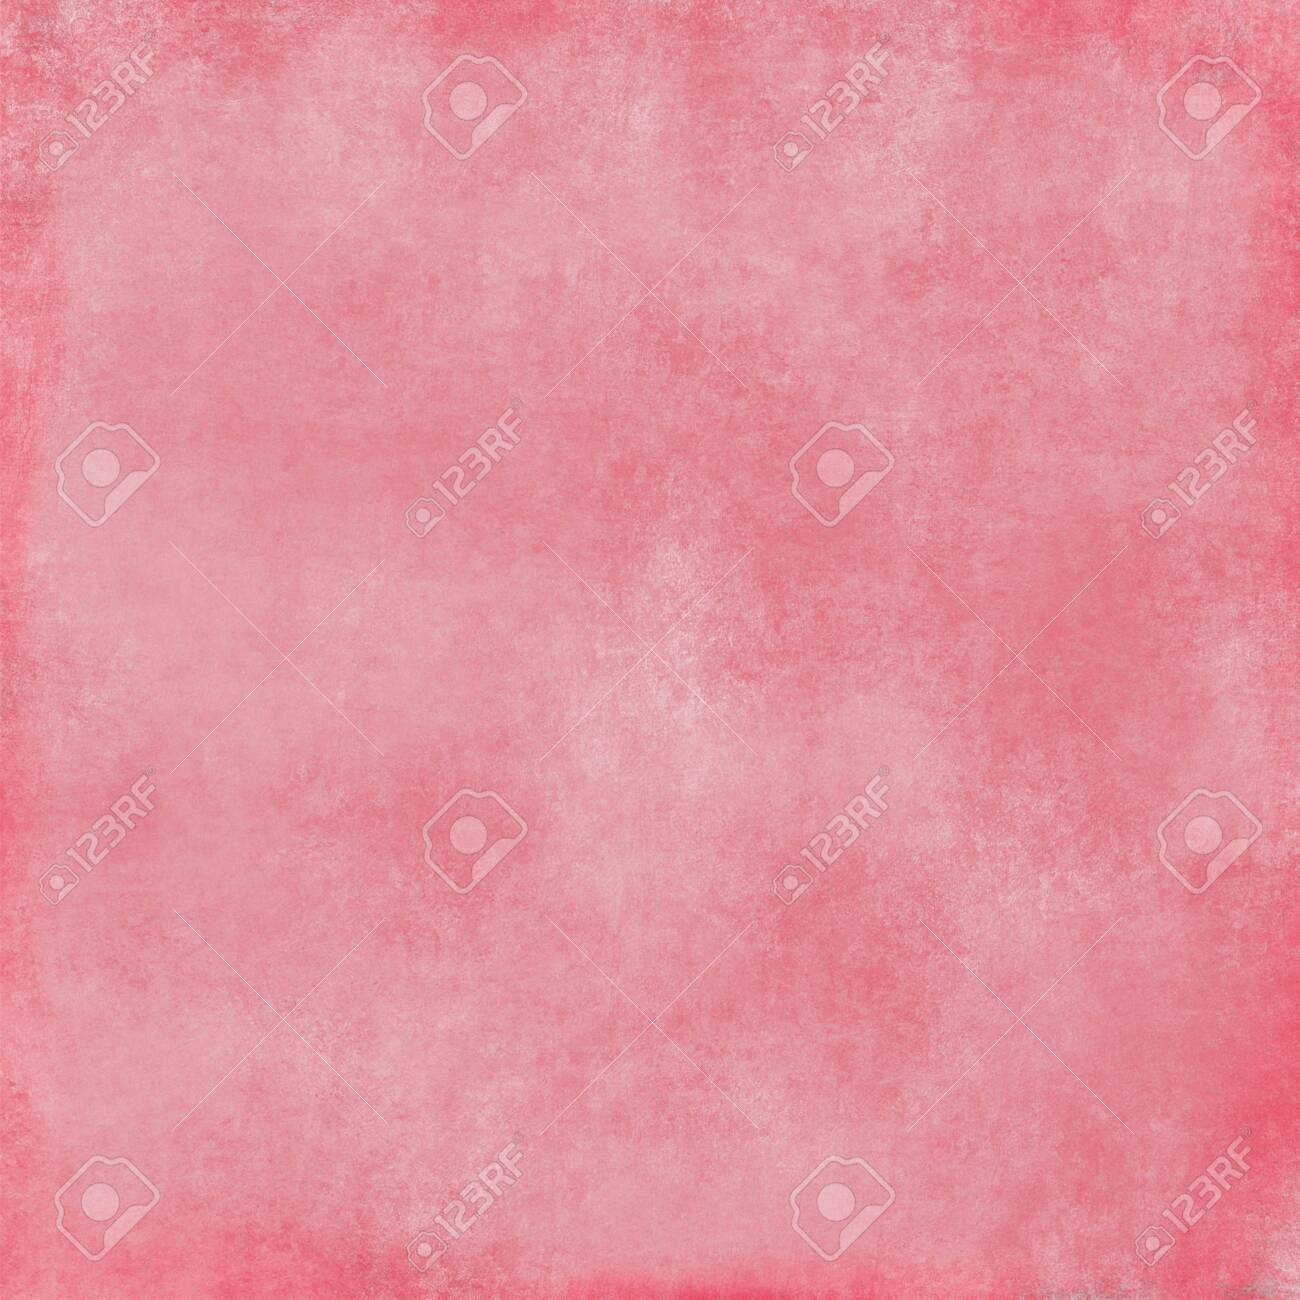 grunge abstract background - 140316265